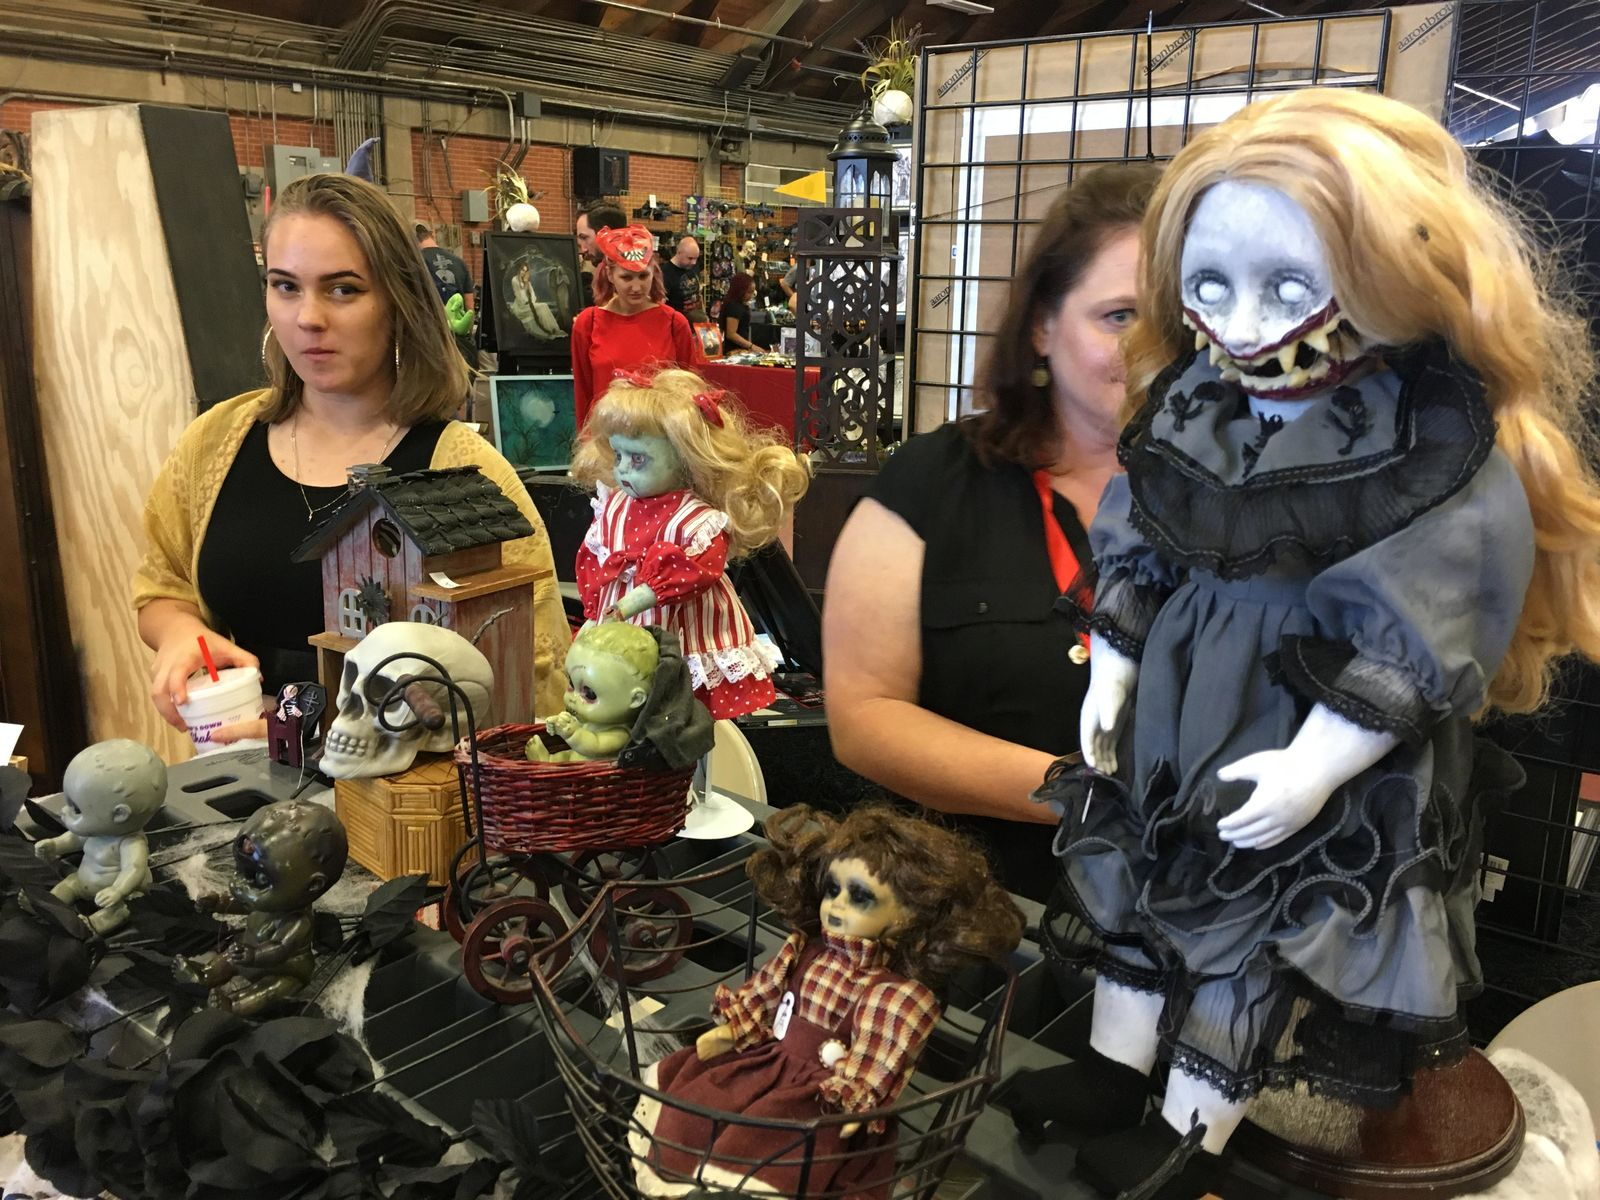 Nightfall Haunted Territory's Horror Con event takes place July 20th, 2019 in Oklahoma City. (David Young/KOKH)<p></p>